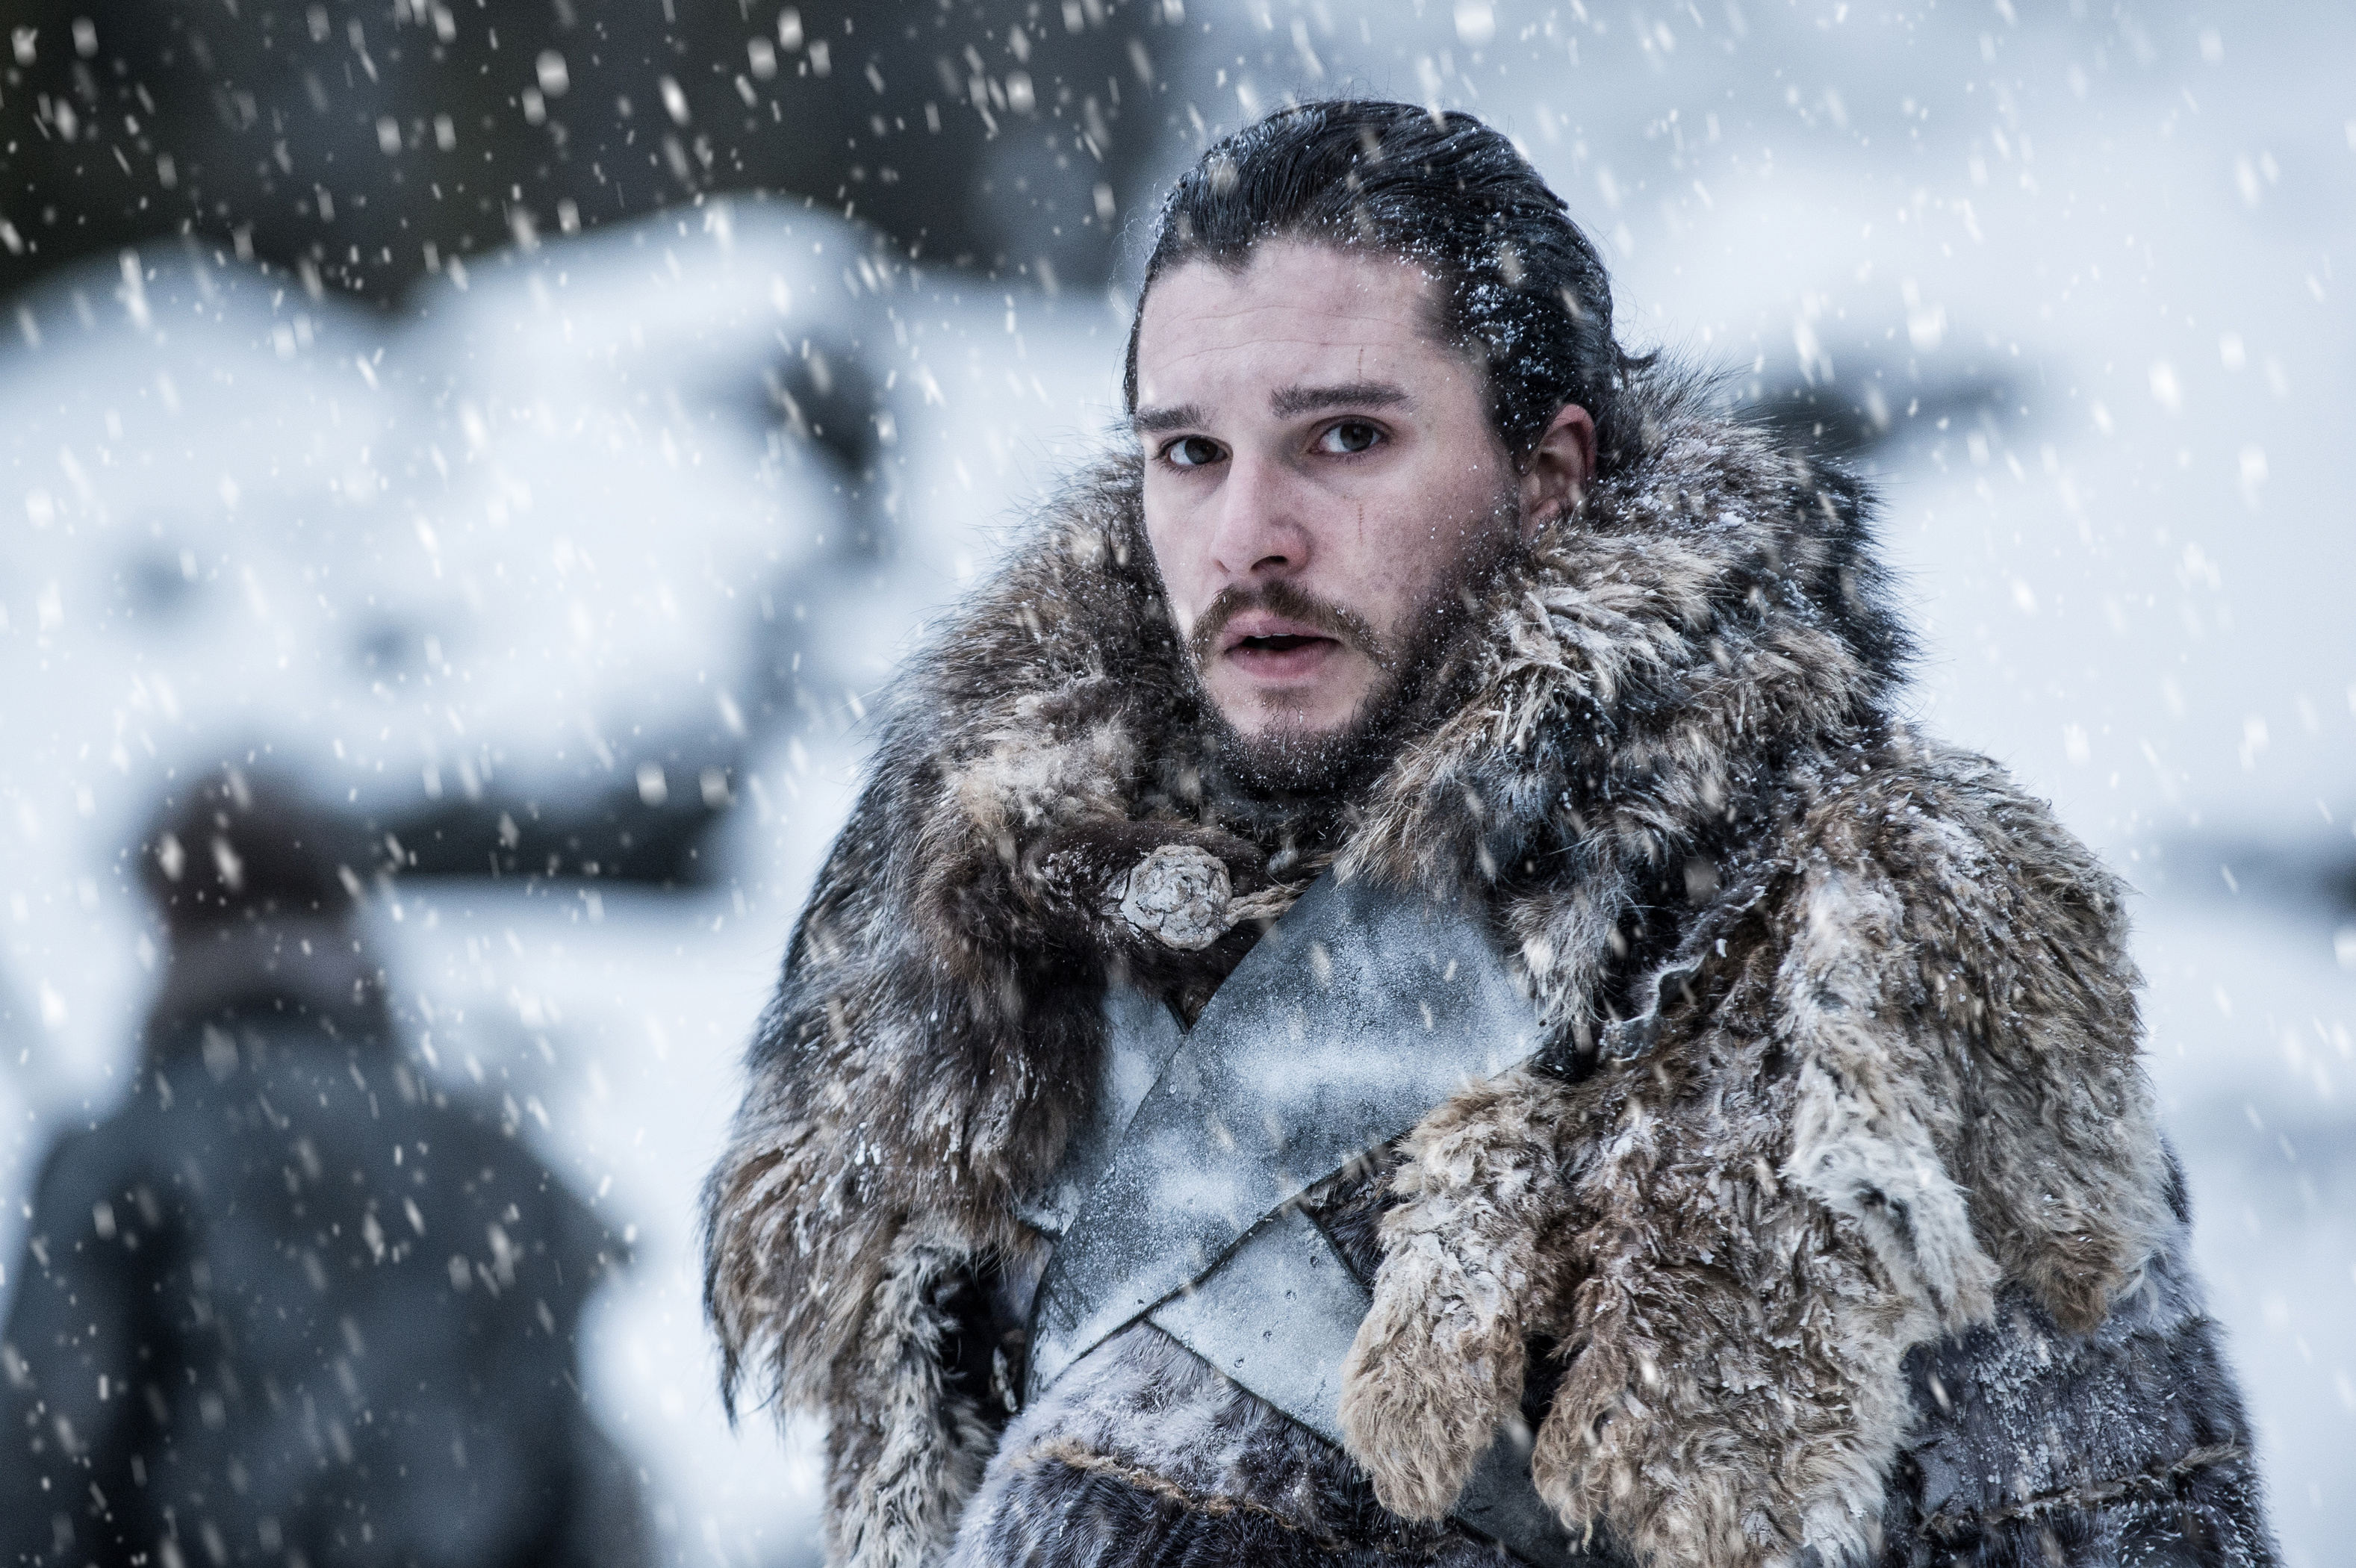 Game of Thrones, Season 7 Episode 6 – 'Beyond the Wall' | Review – Citus, Altius, Fortius